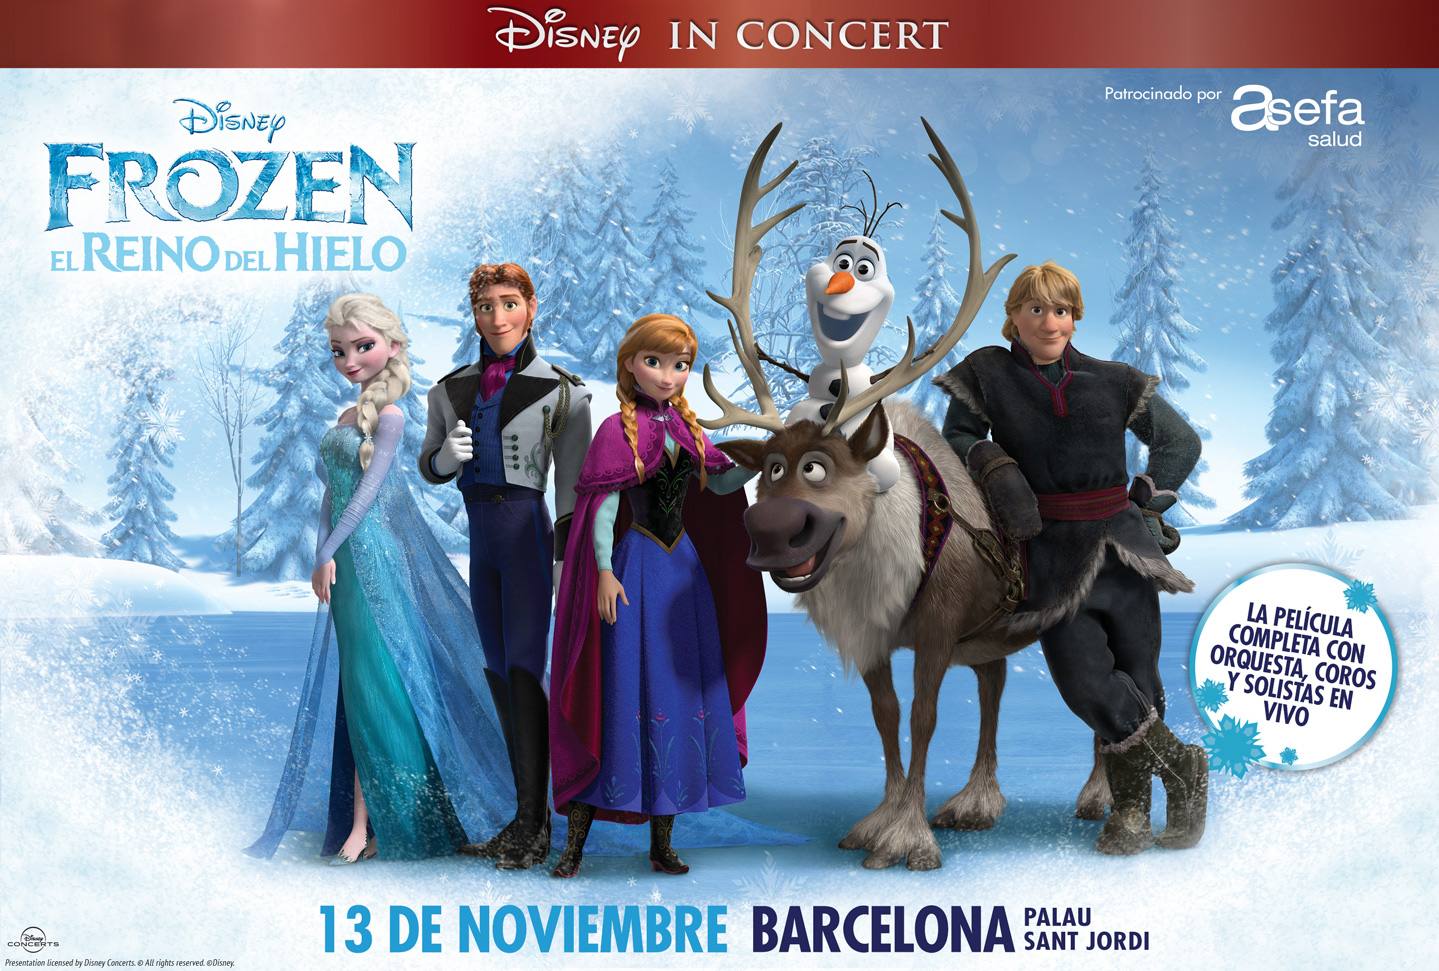 In love with Karen en el concierto de Frozen